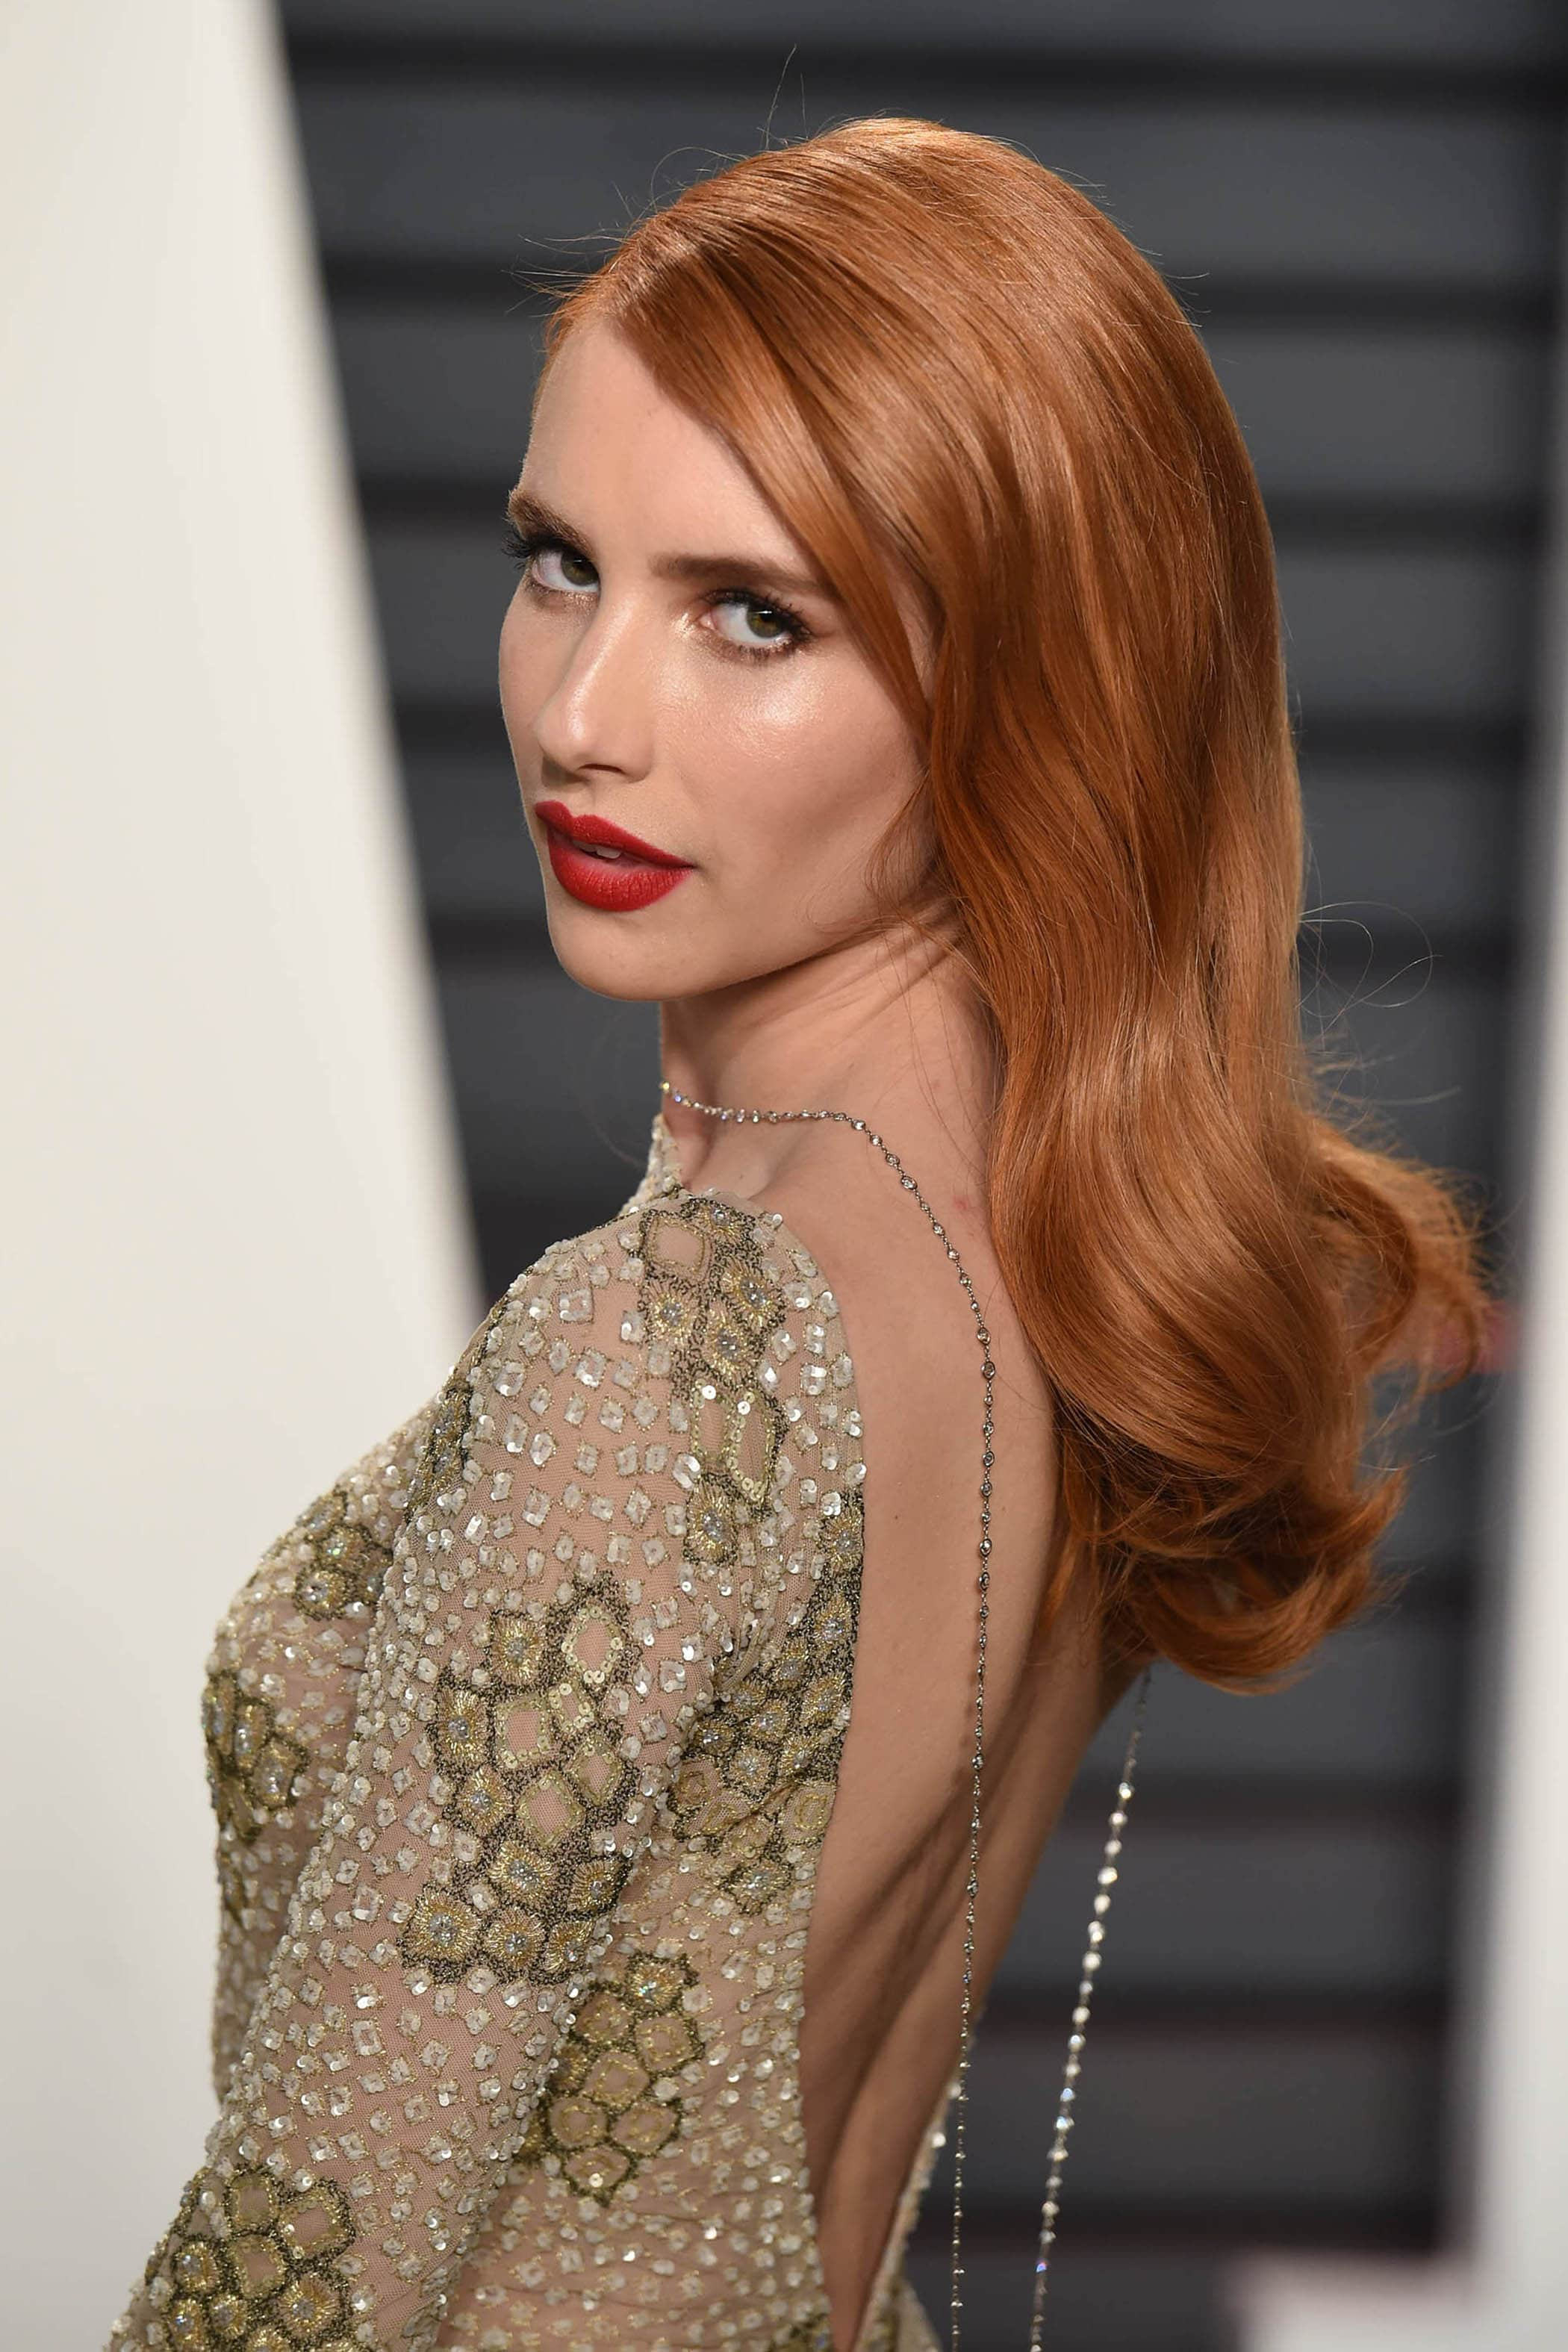 Red carpet hairstyles: Emma Roberts fiery red hair colour with loose curls Oscars 2017